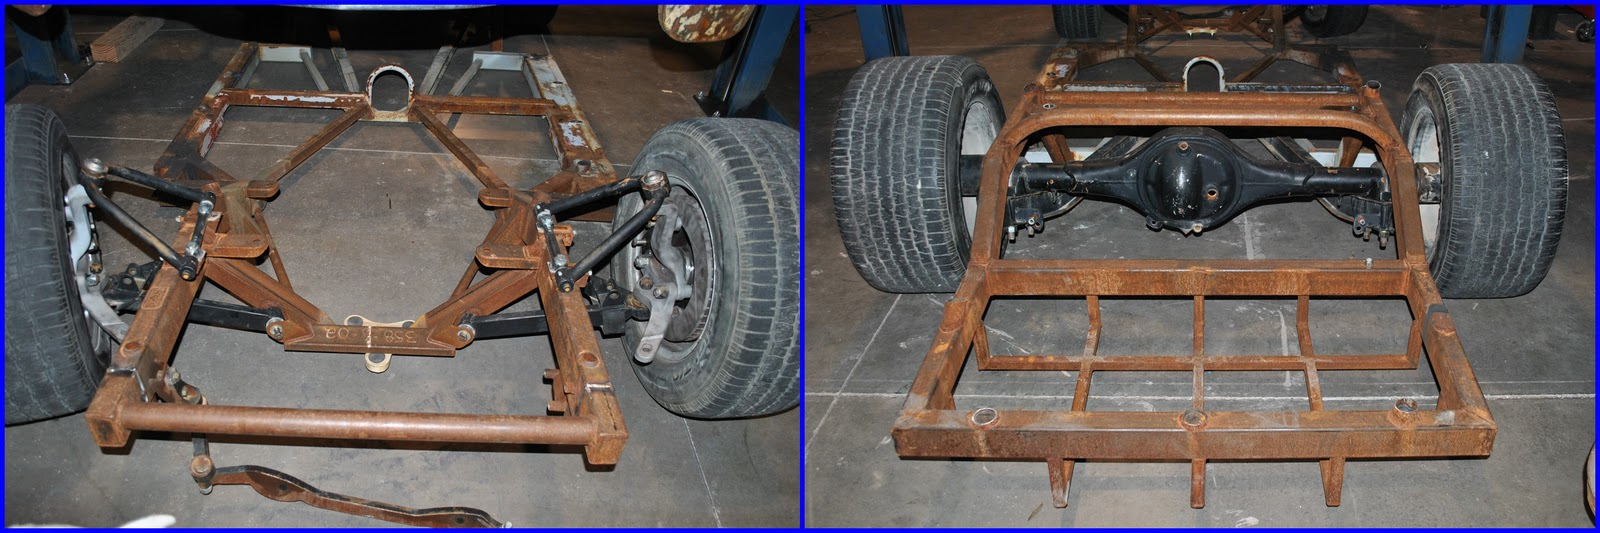 Project '51 Chevy Pickup: Chassis